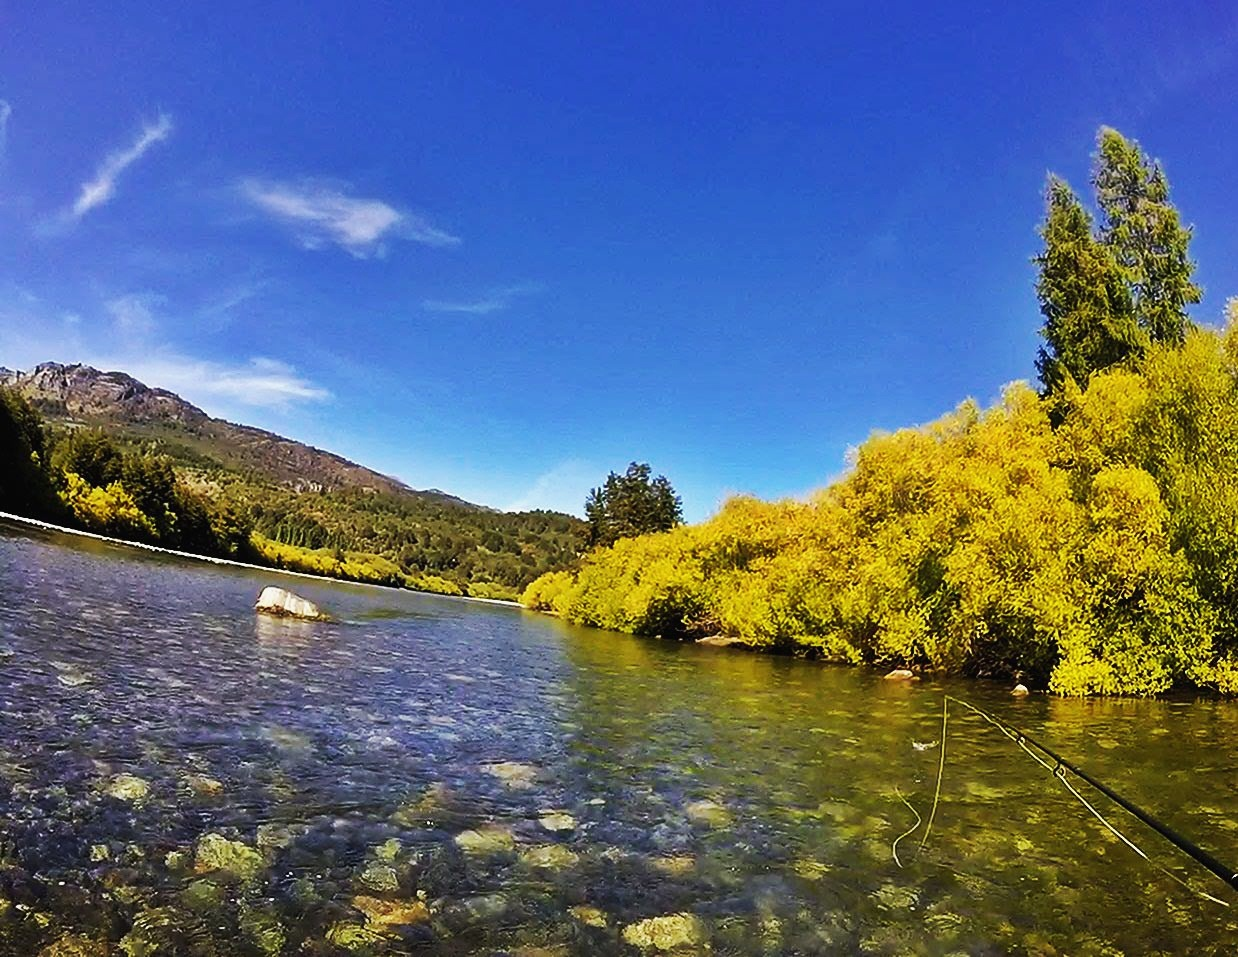 Patagonia Chile Fly Fishing Guide |  Patagonia Fly Fishing Guide | Chile Fly Fishing Guide |  Patagonia Trout Adventures |